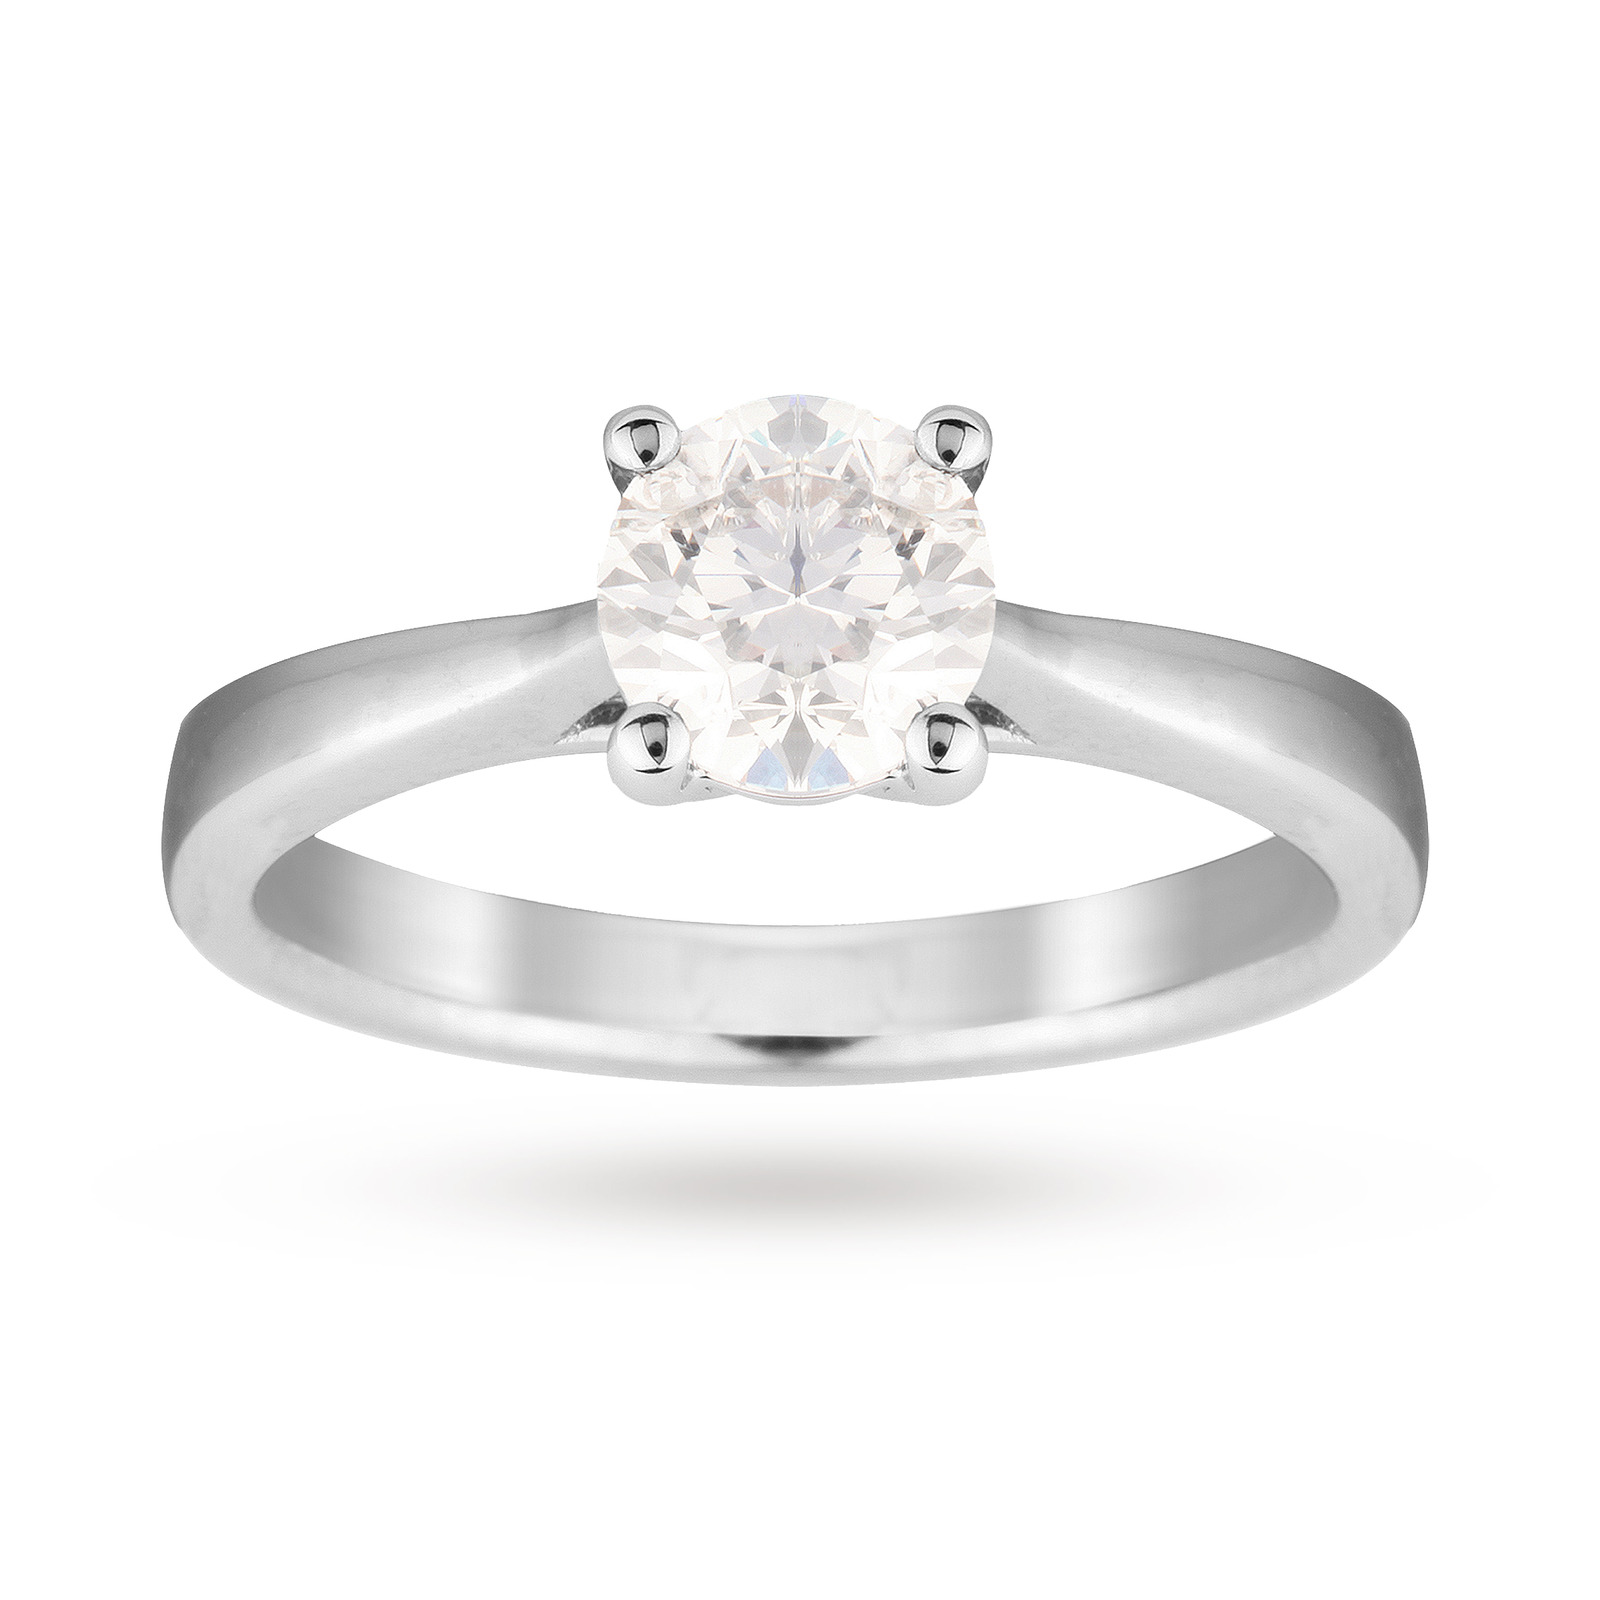 18ct White Gold 1.00 Carat Solitaire Ring